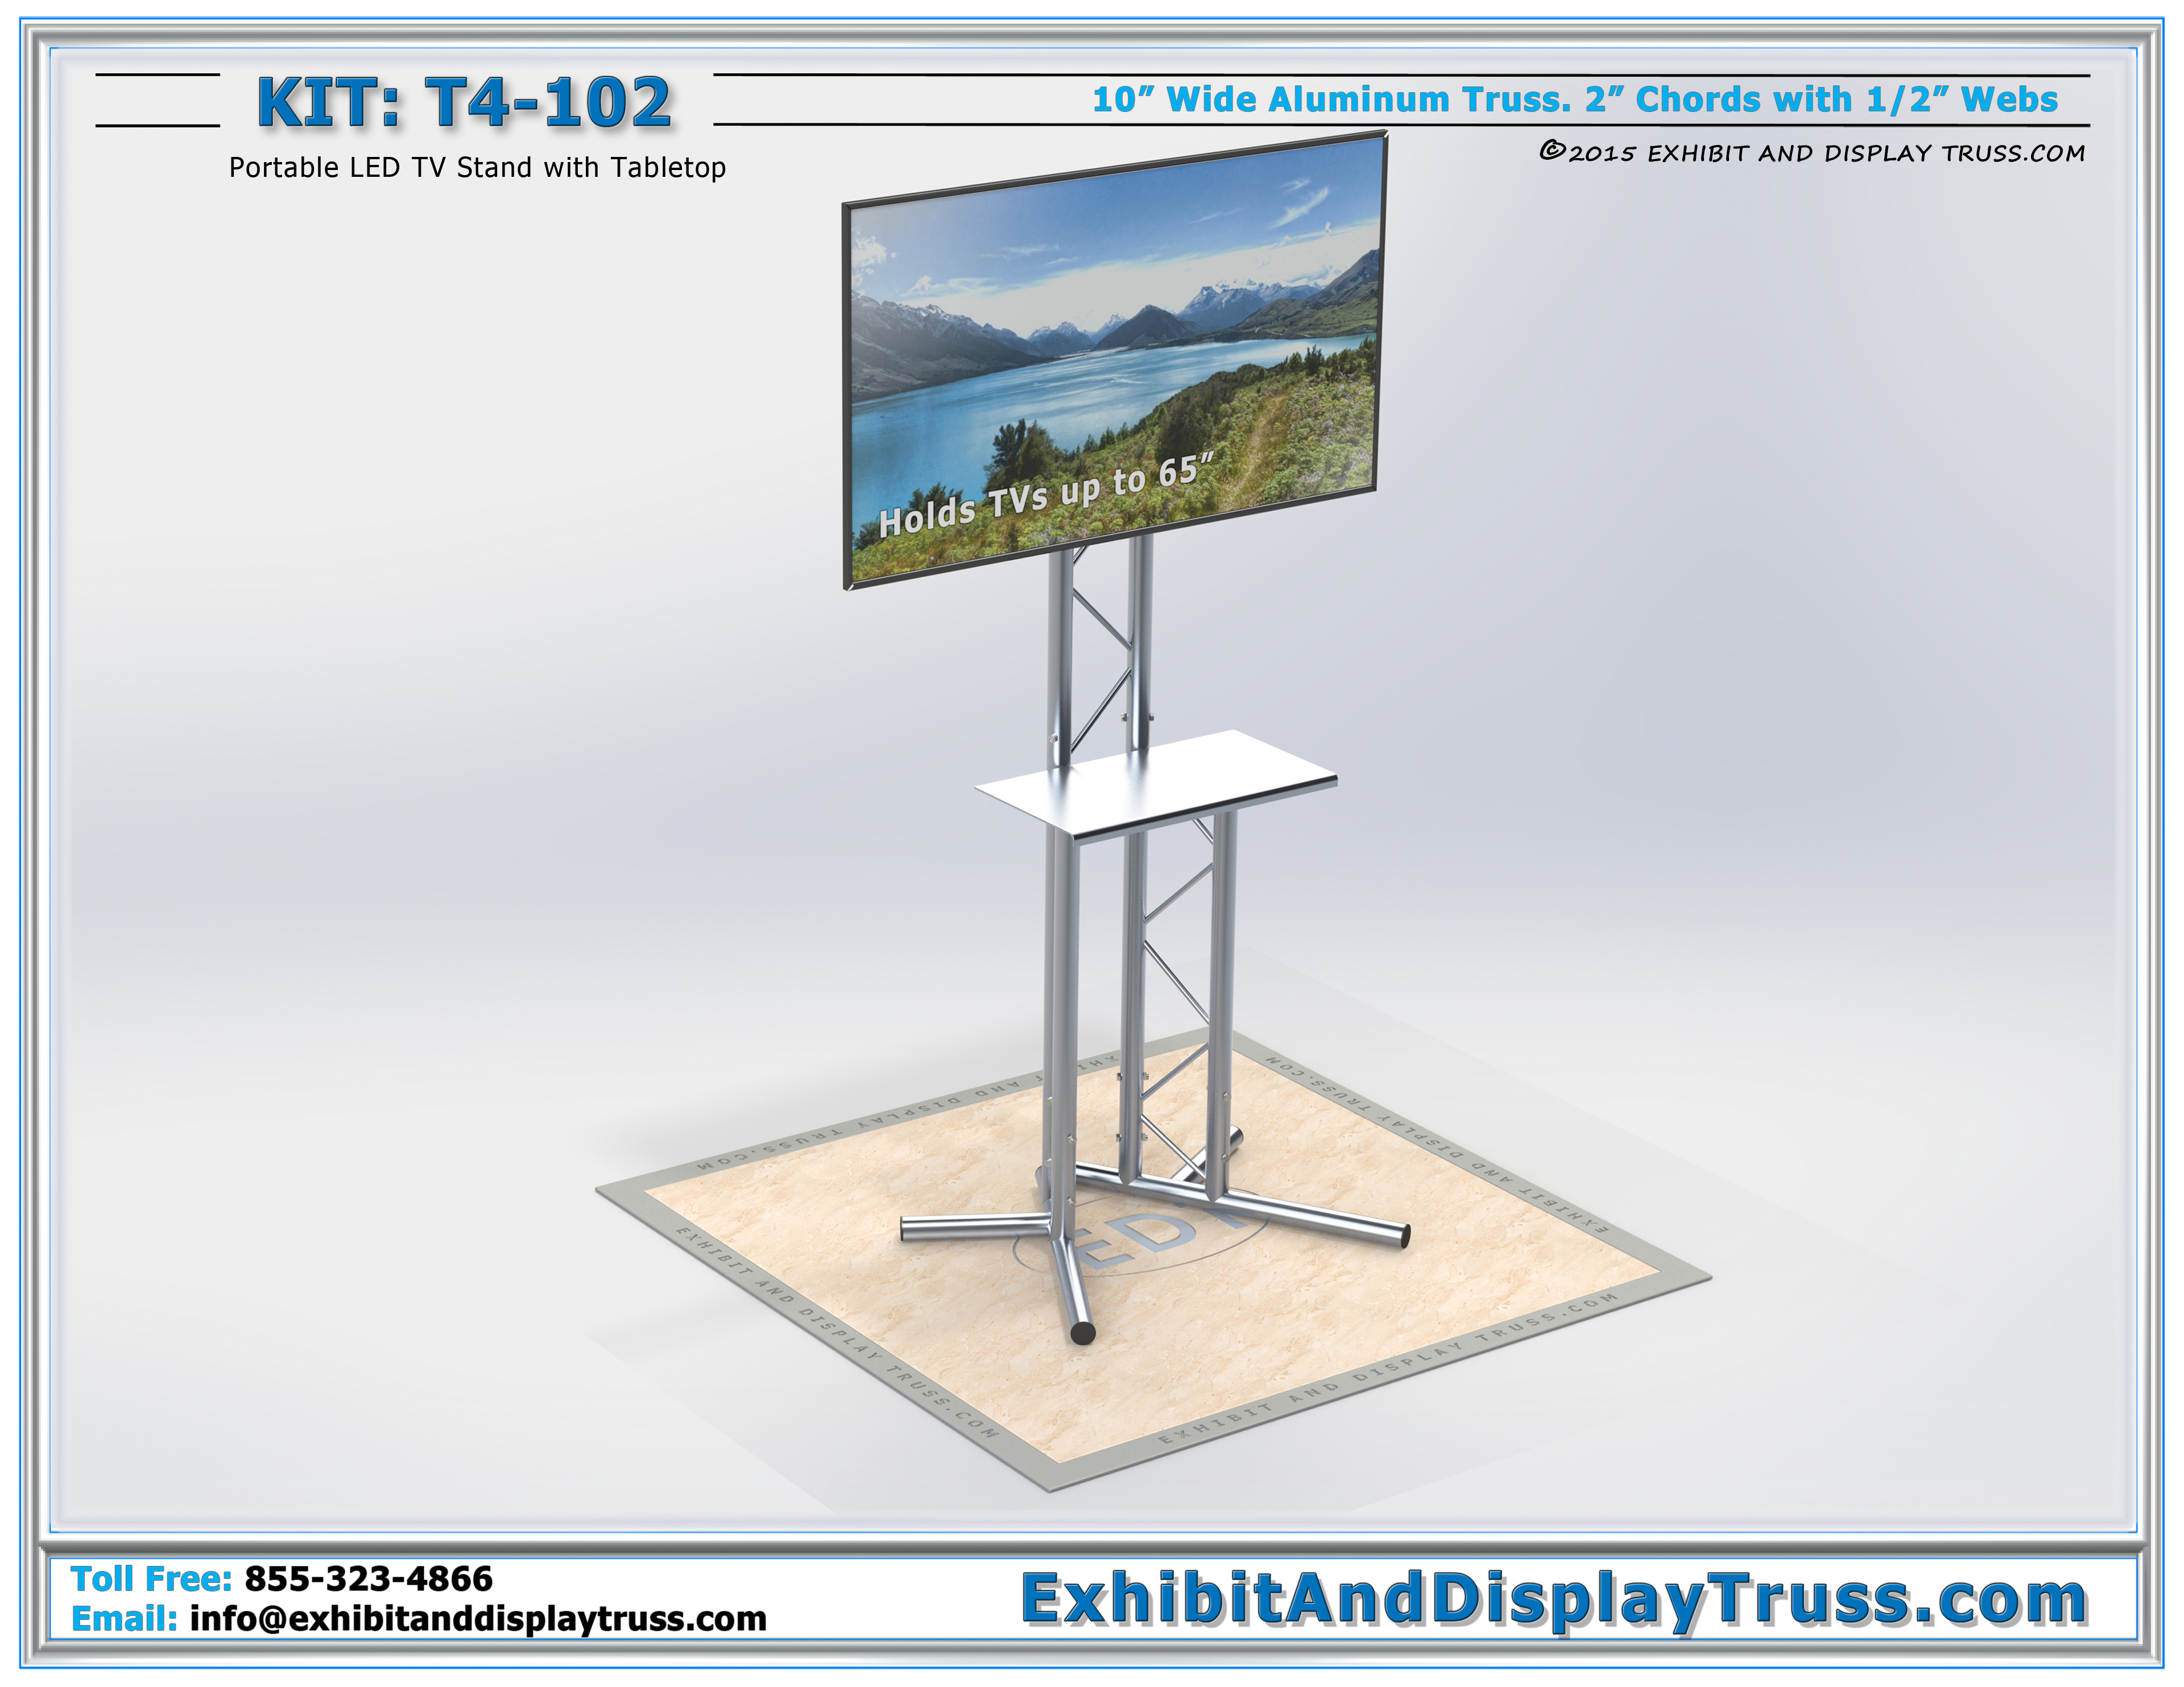 Note: This Stand Does Not Come With The TV Mount. TV Mount Can Be Purchased  Here.